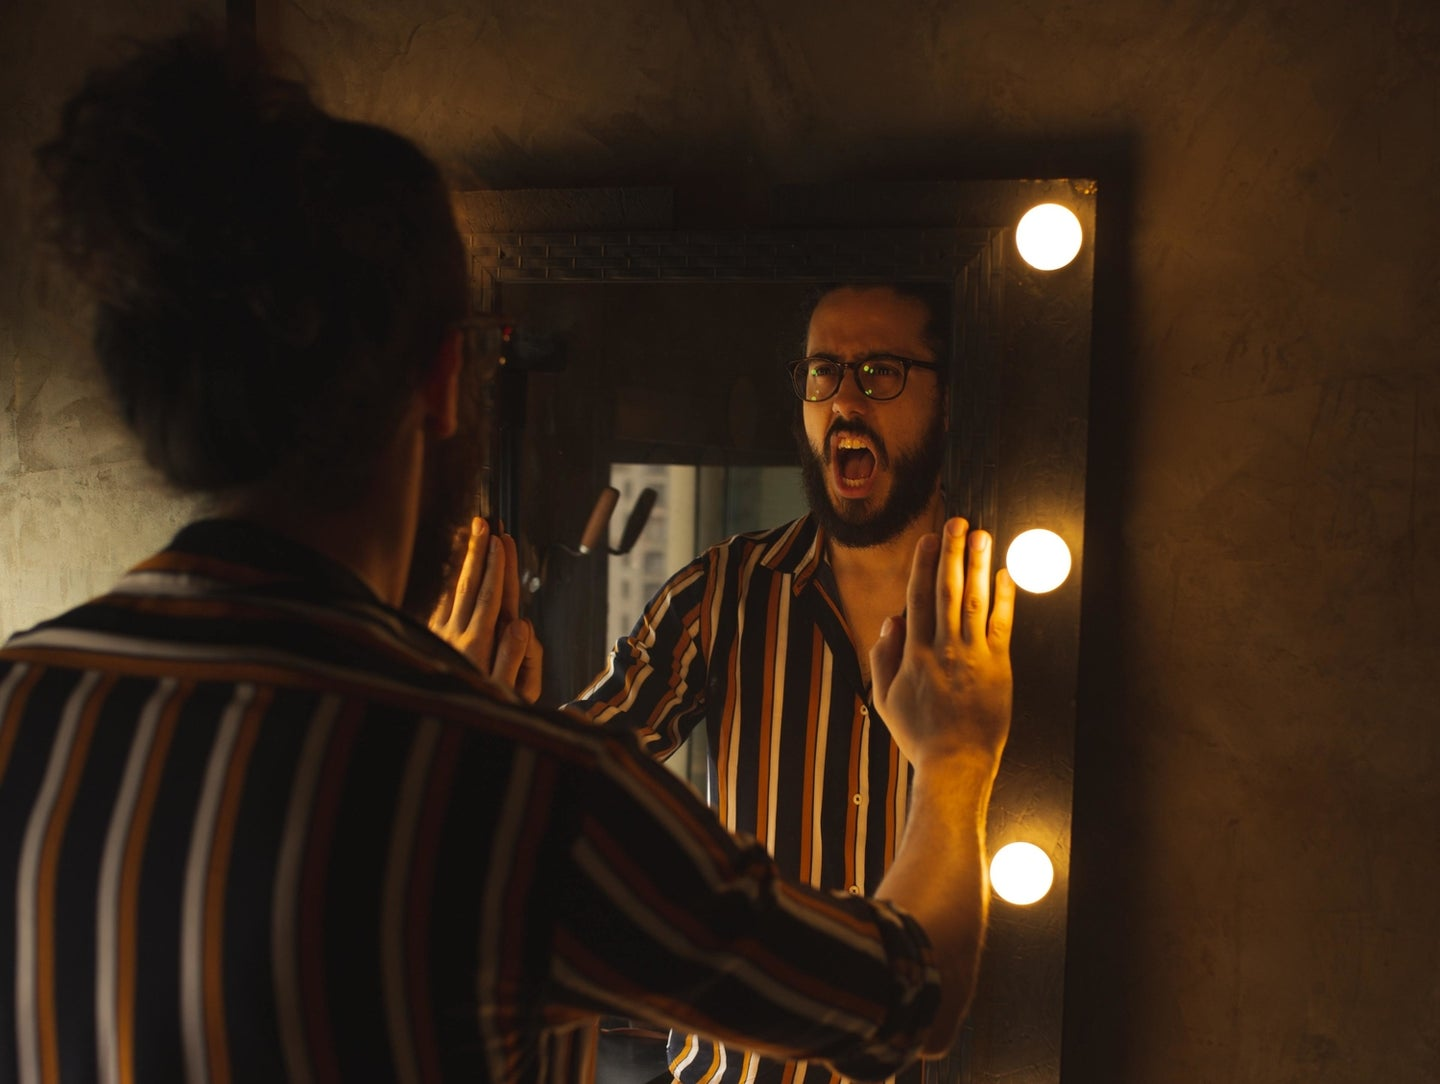 a man standing at a mirror and yelling at his reflection in the dark